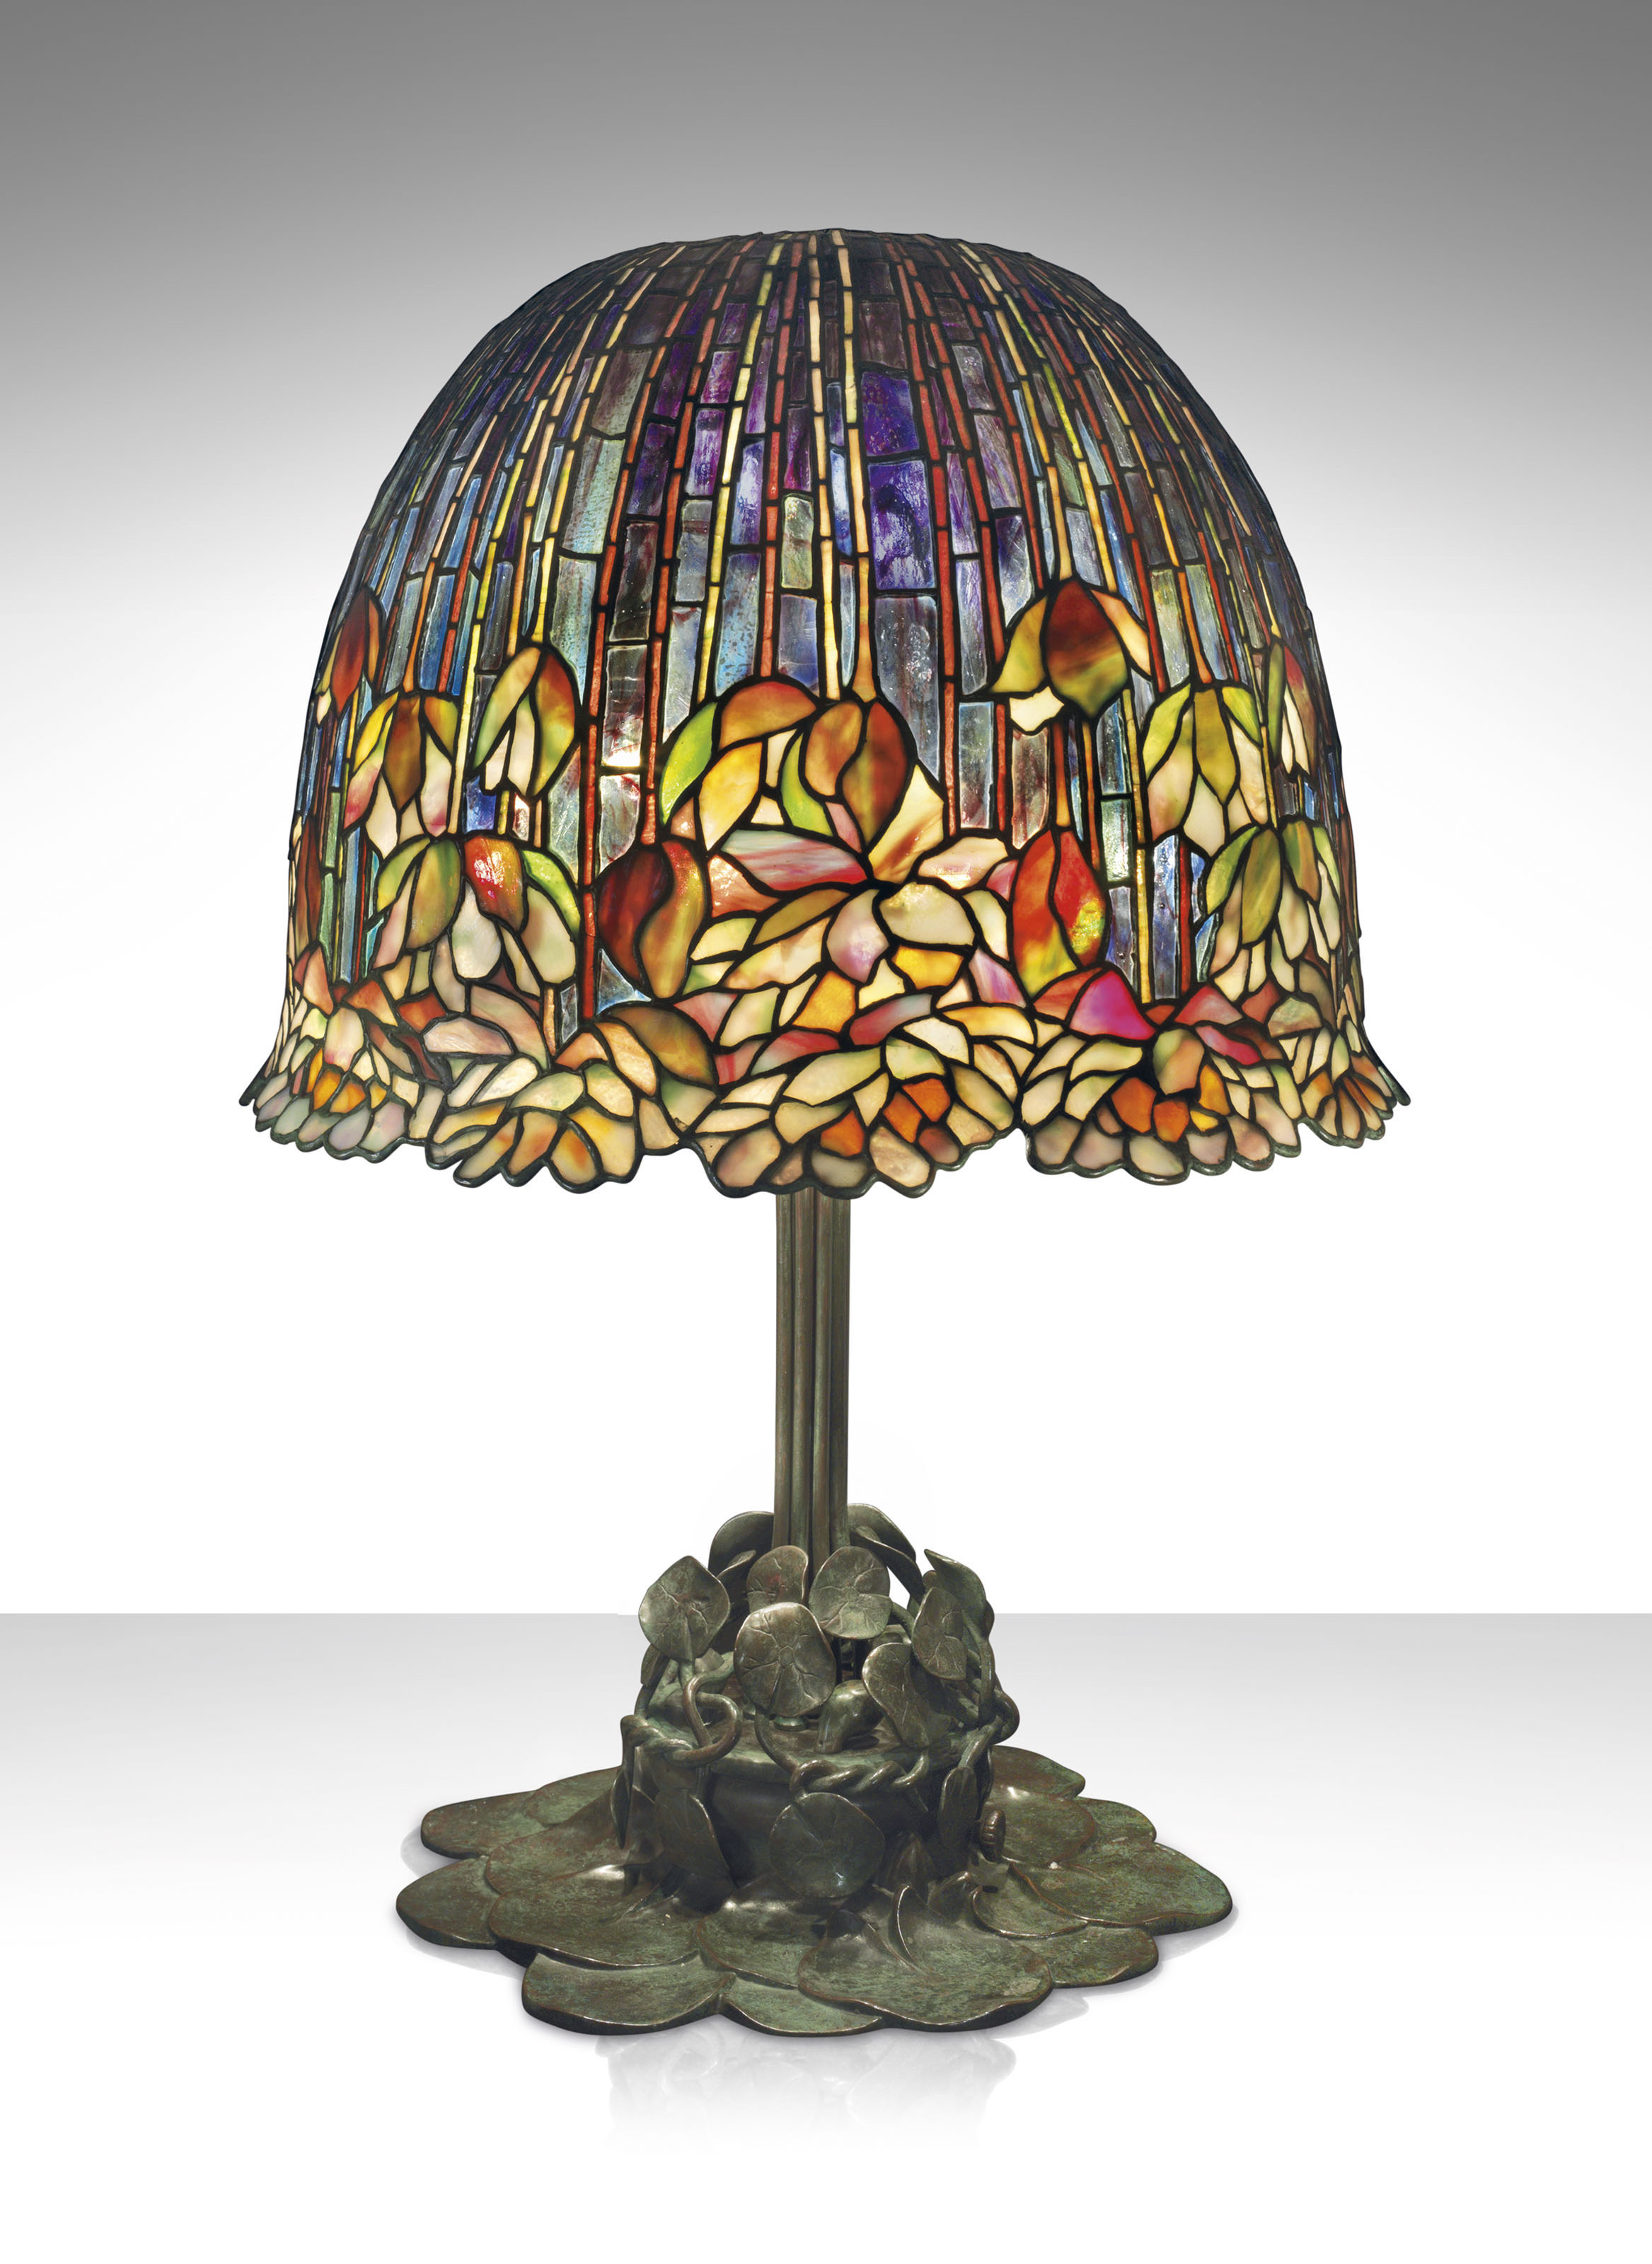 Tiffany Studios A Rare And Important Pond Lily Table